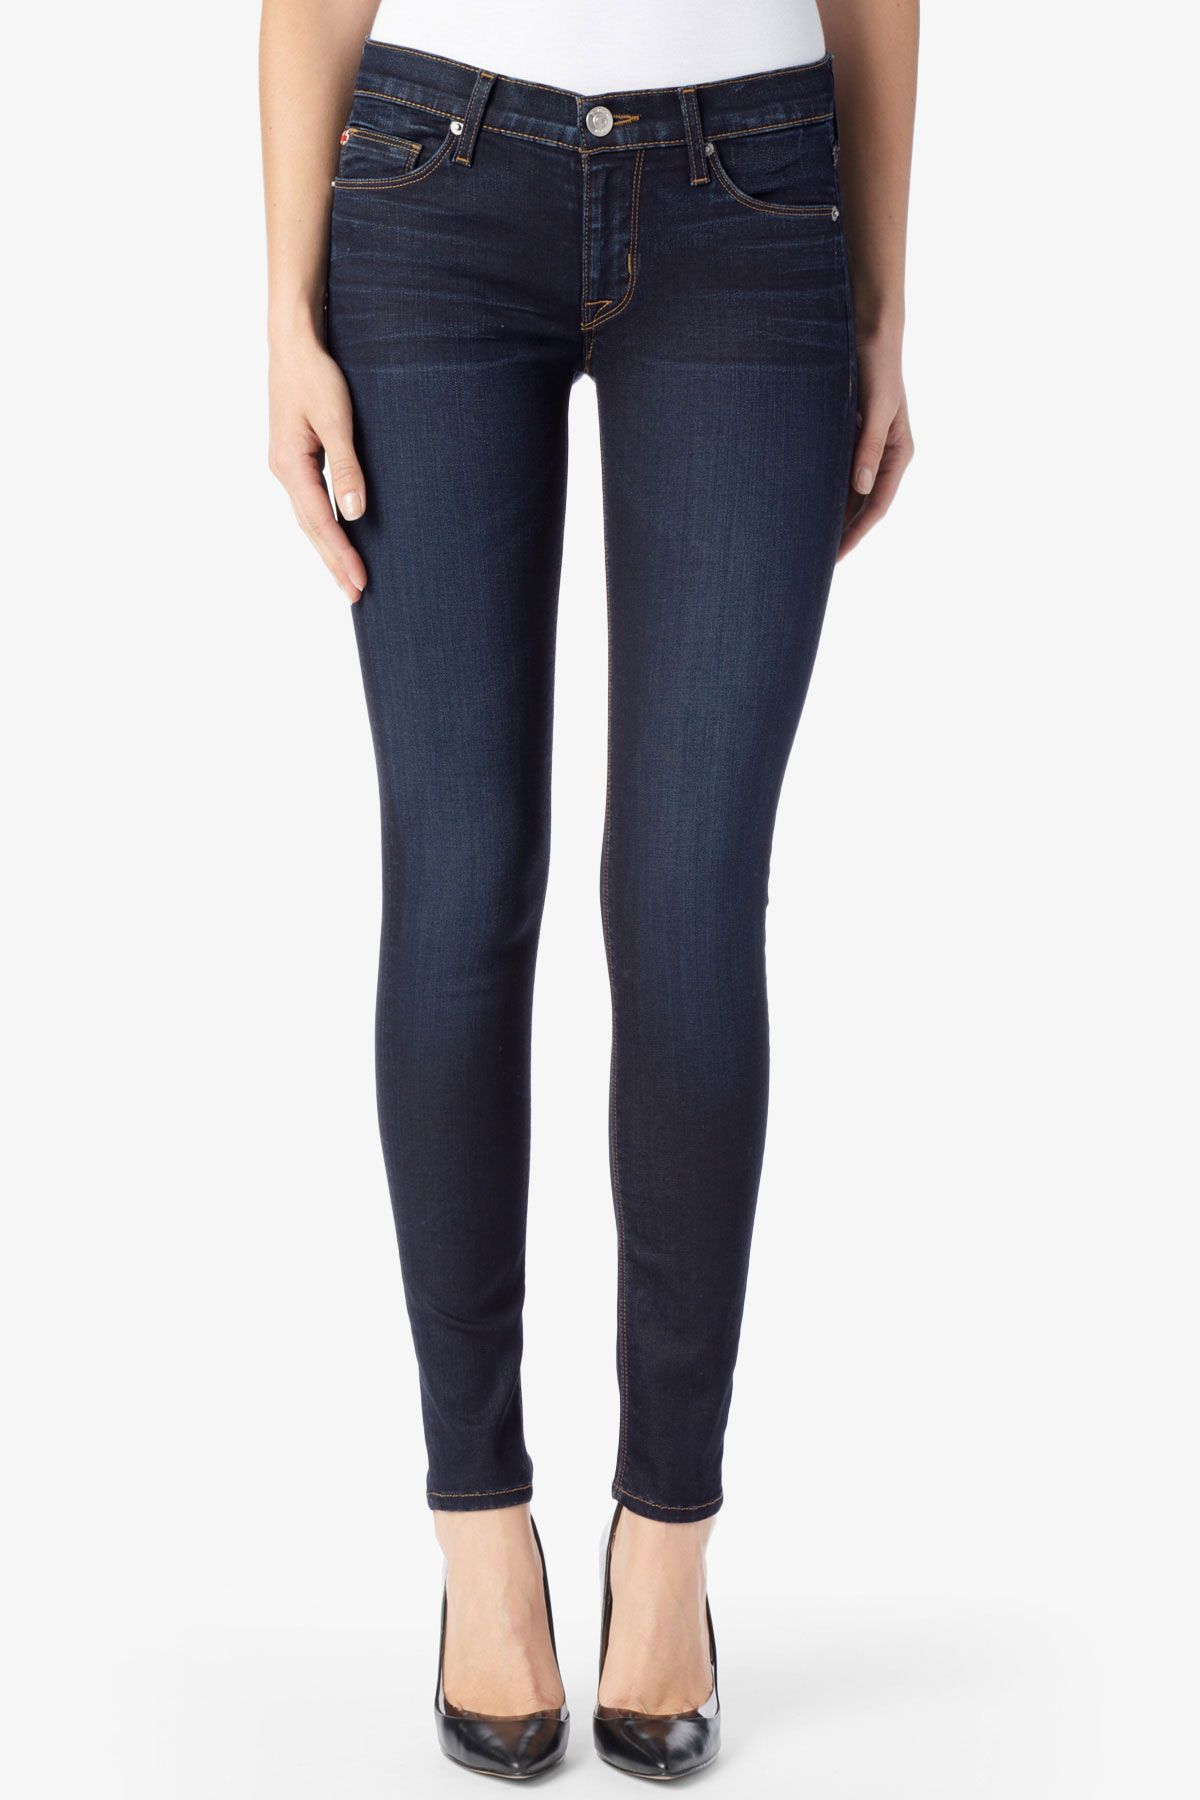 ladies super skinny jeans - Jean Yu Beauty